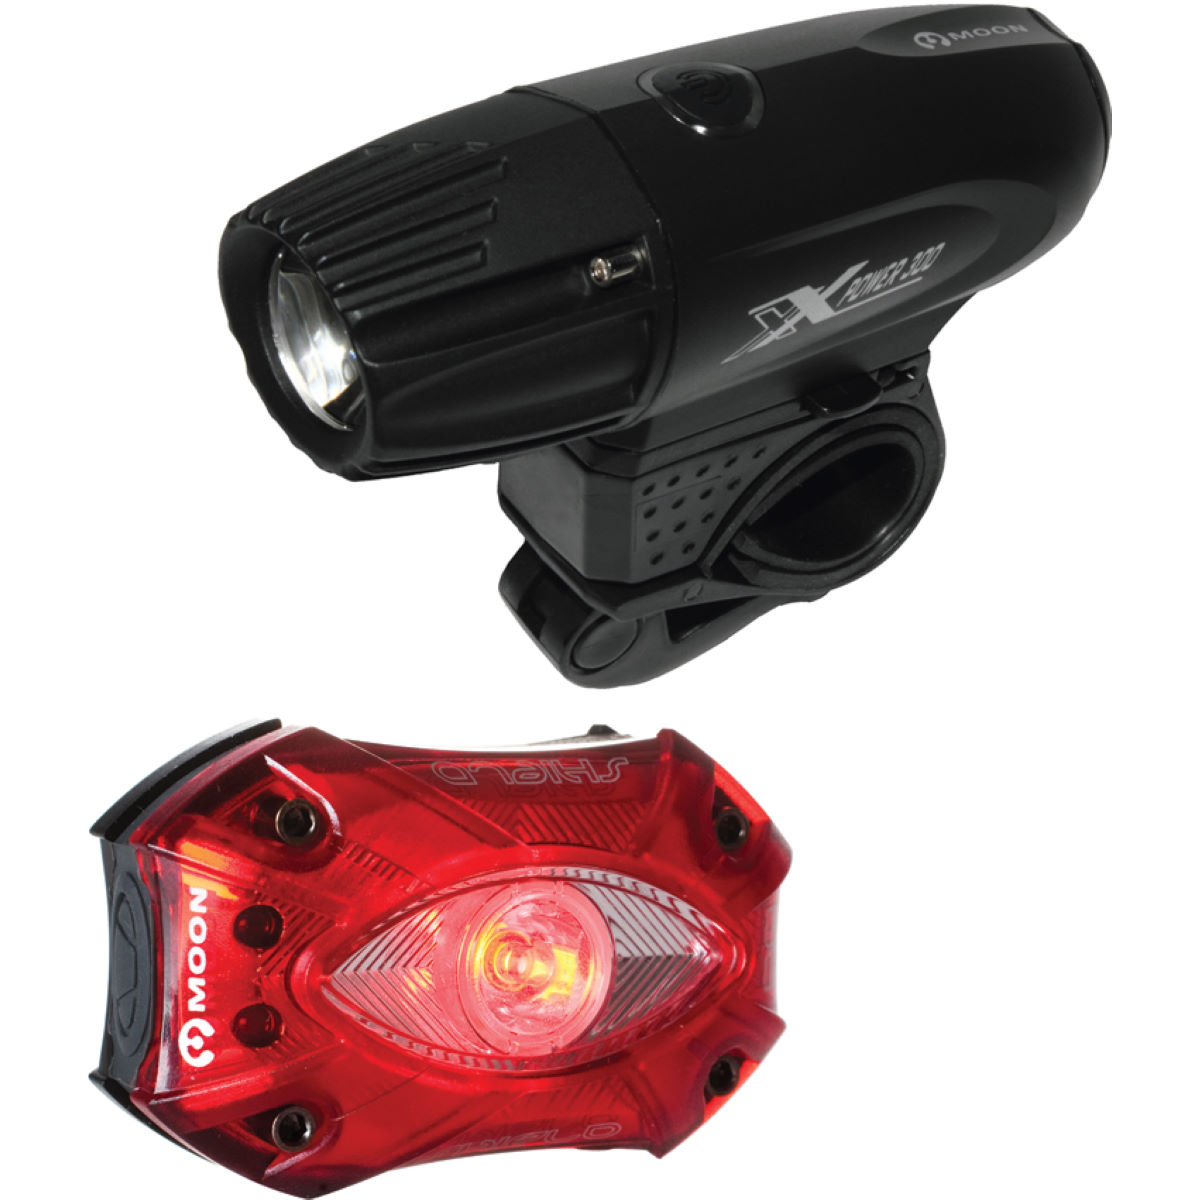 Moon X-Power 330 Front and Shield Rear Light Set